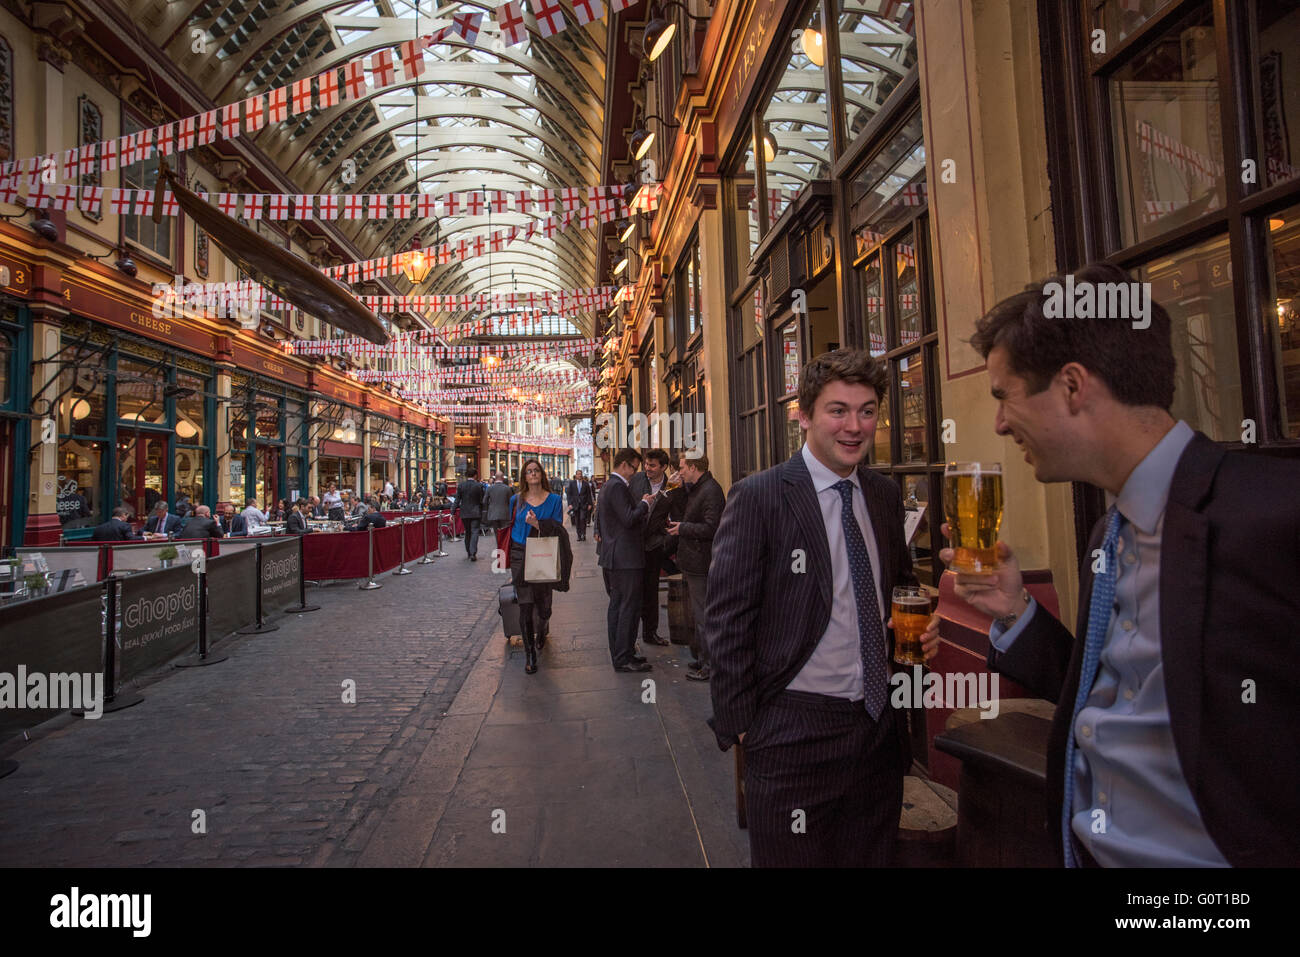 City of London, London, England,UK. 19 April 2016 City types drink at lunchtime in Leadenhall market. Leadenhall - Stock Image